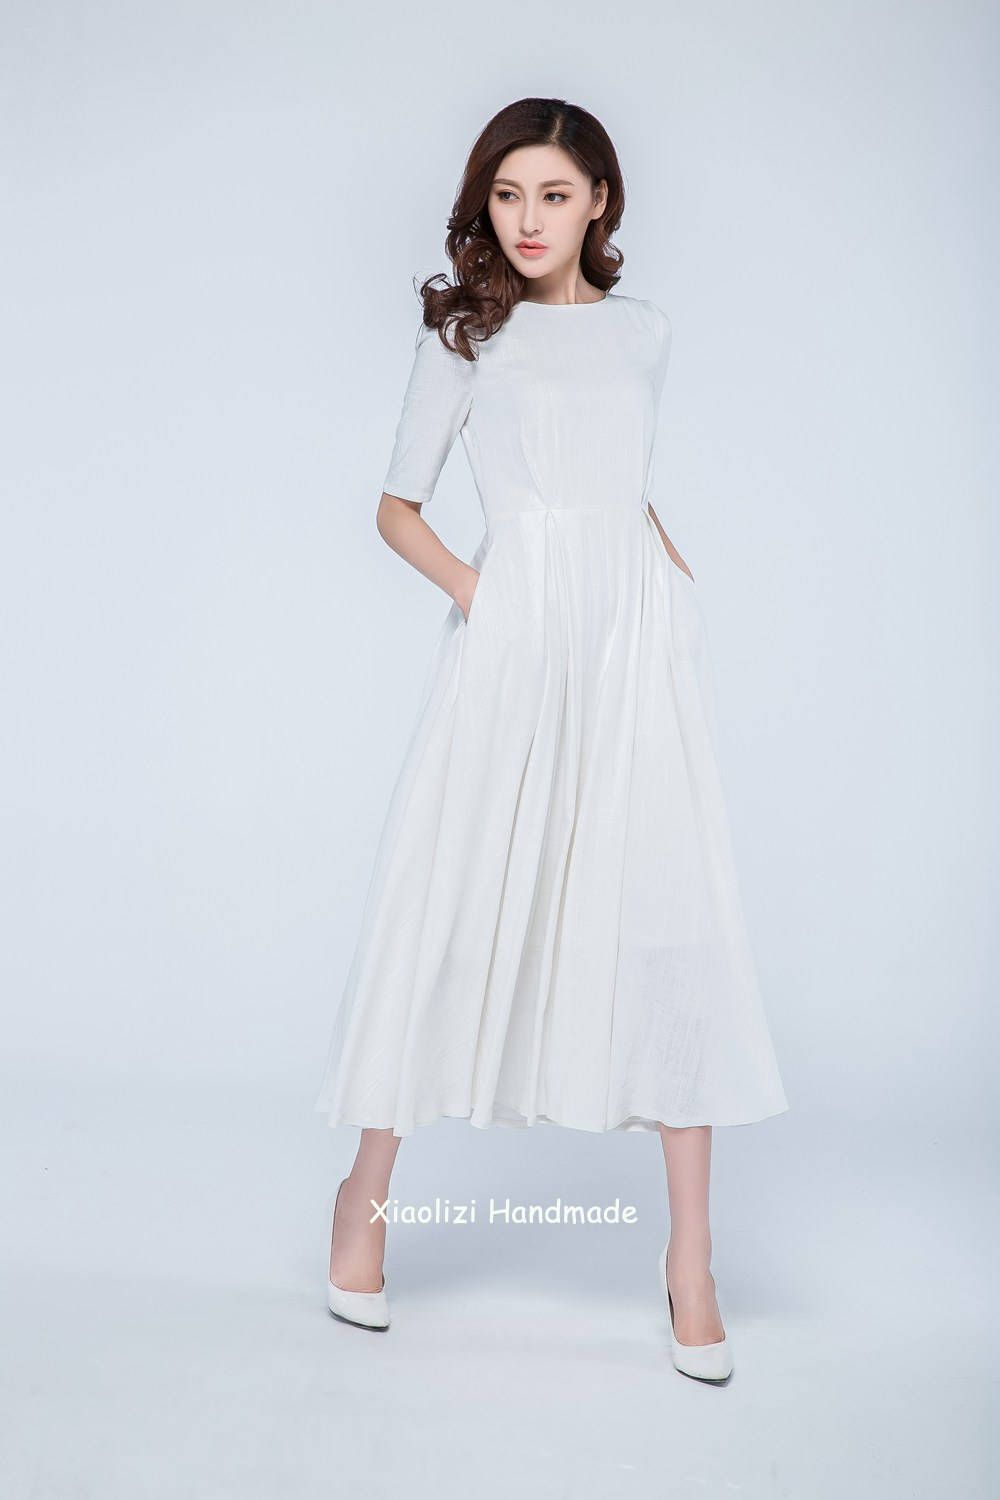 Fashion week Wedding Linen dresses summer pictures for woman